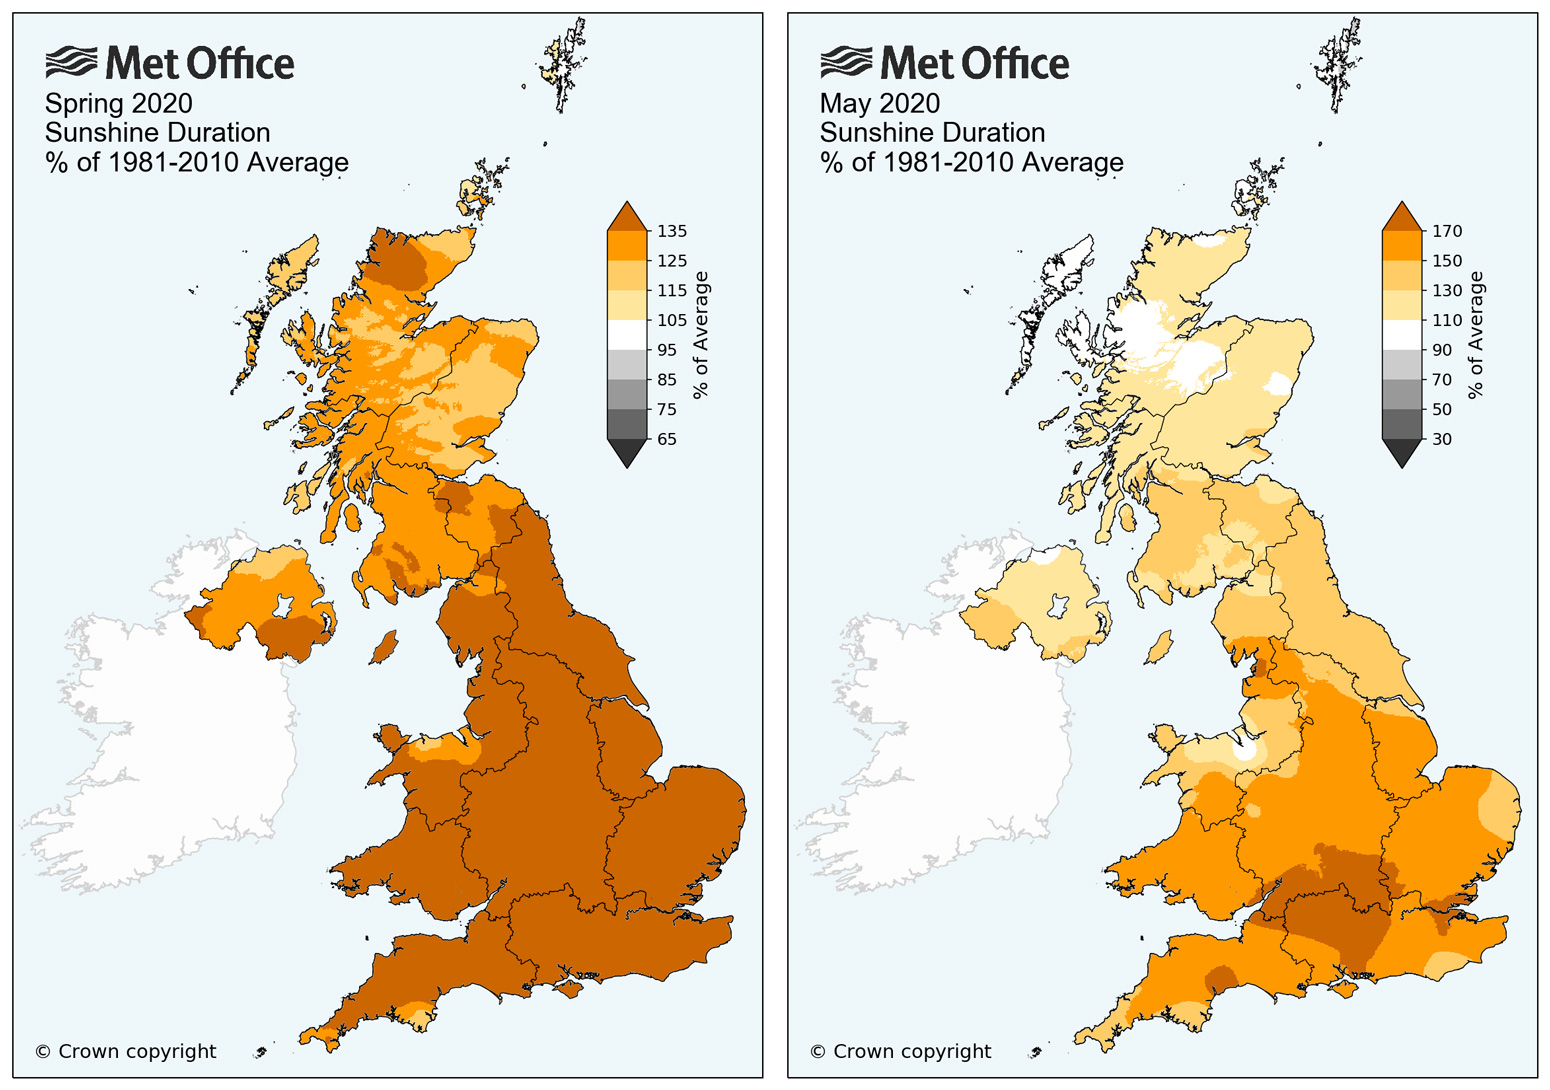 UK sunshine duration for Spring 2020 (left) and May 2020 (right) relative to the 1981-2010 average. Note the different scales used on the colour bars of these two plots. Credit: Met Office